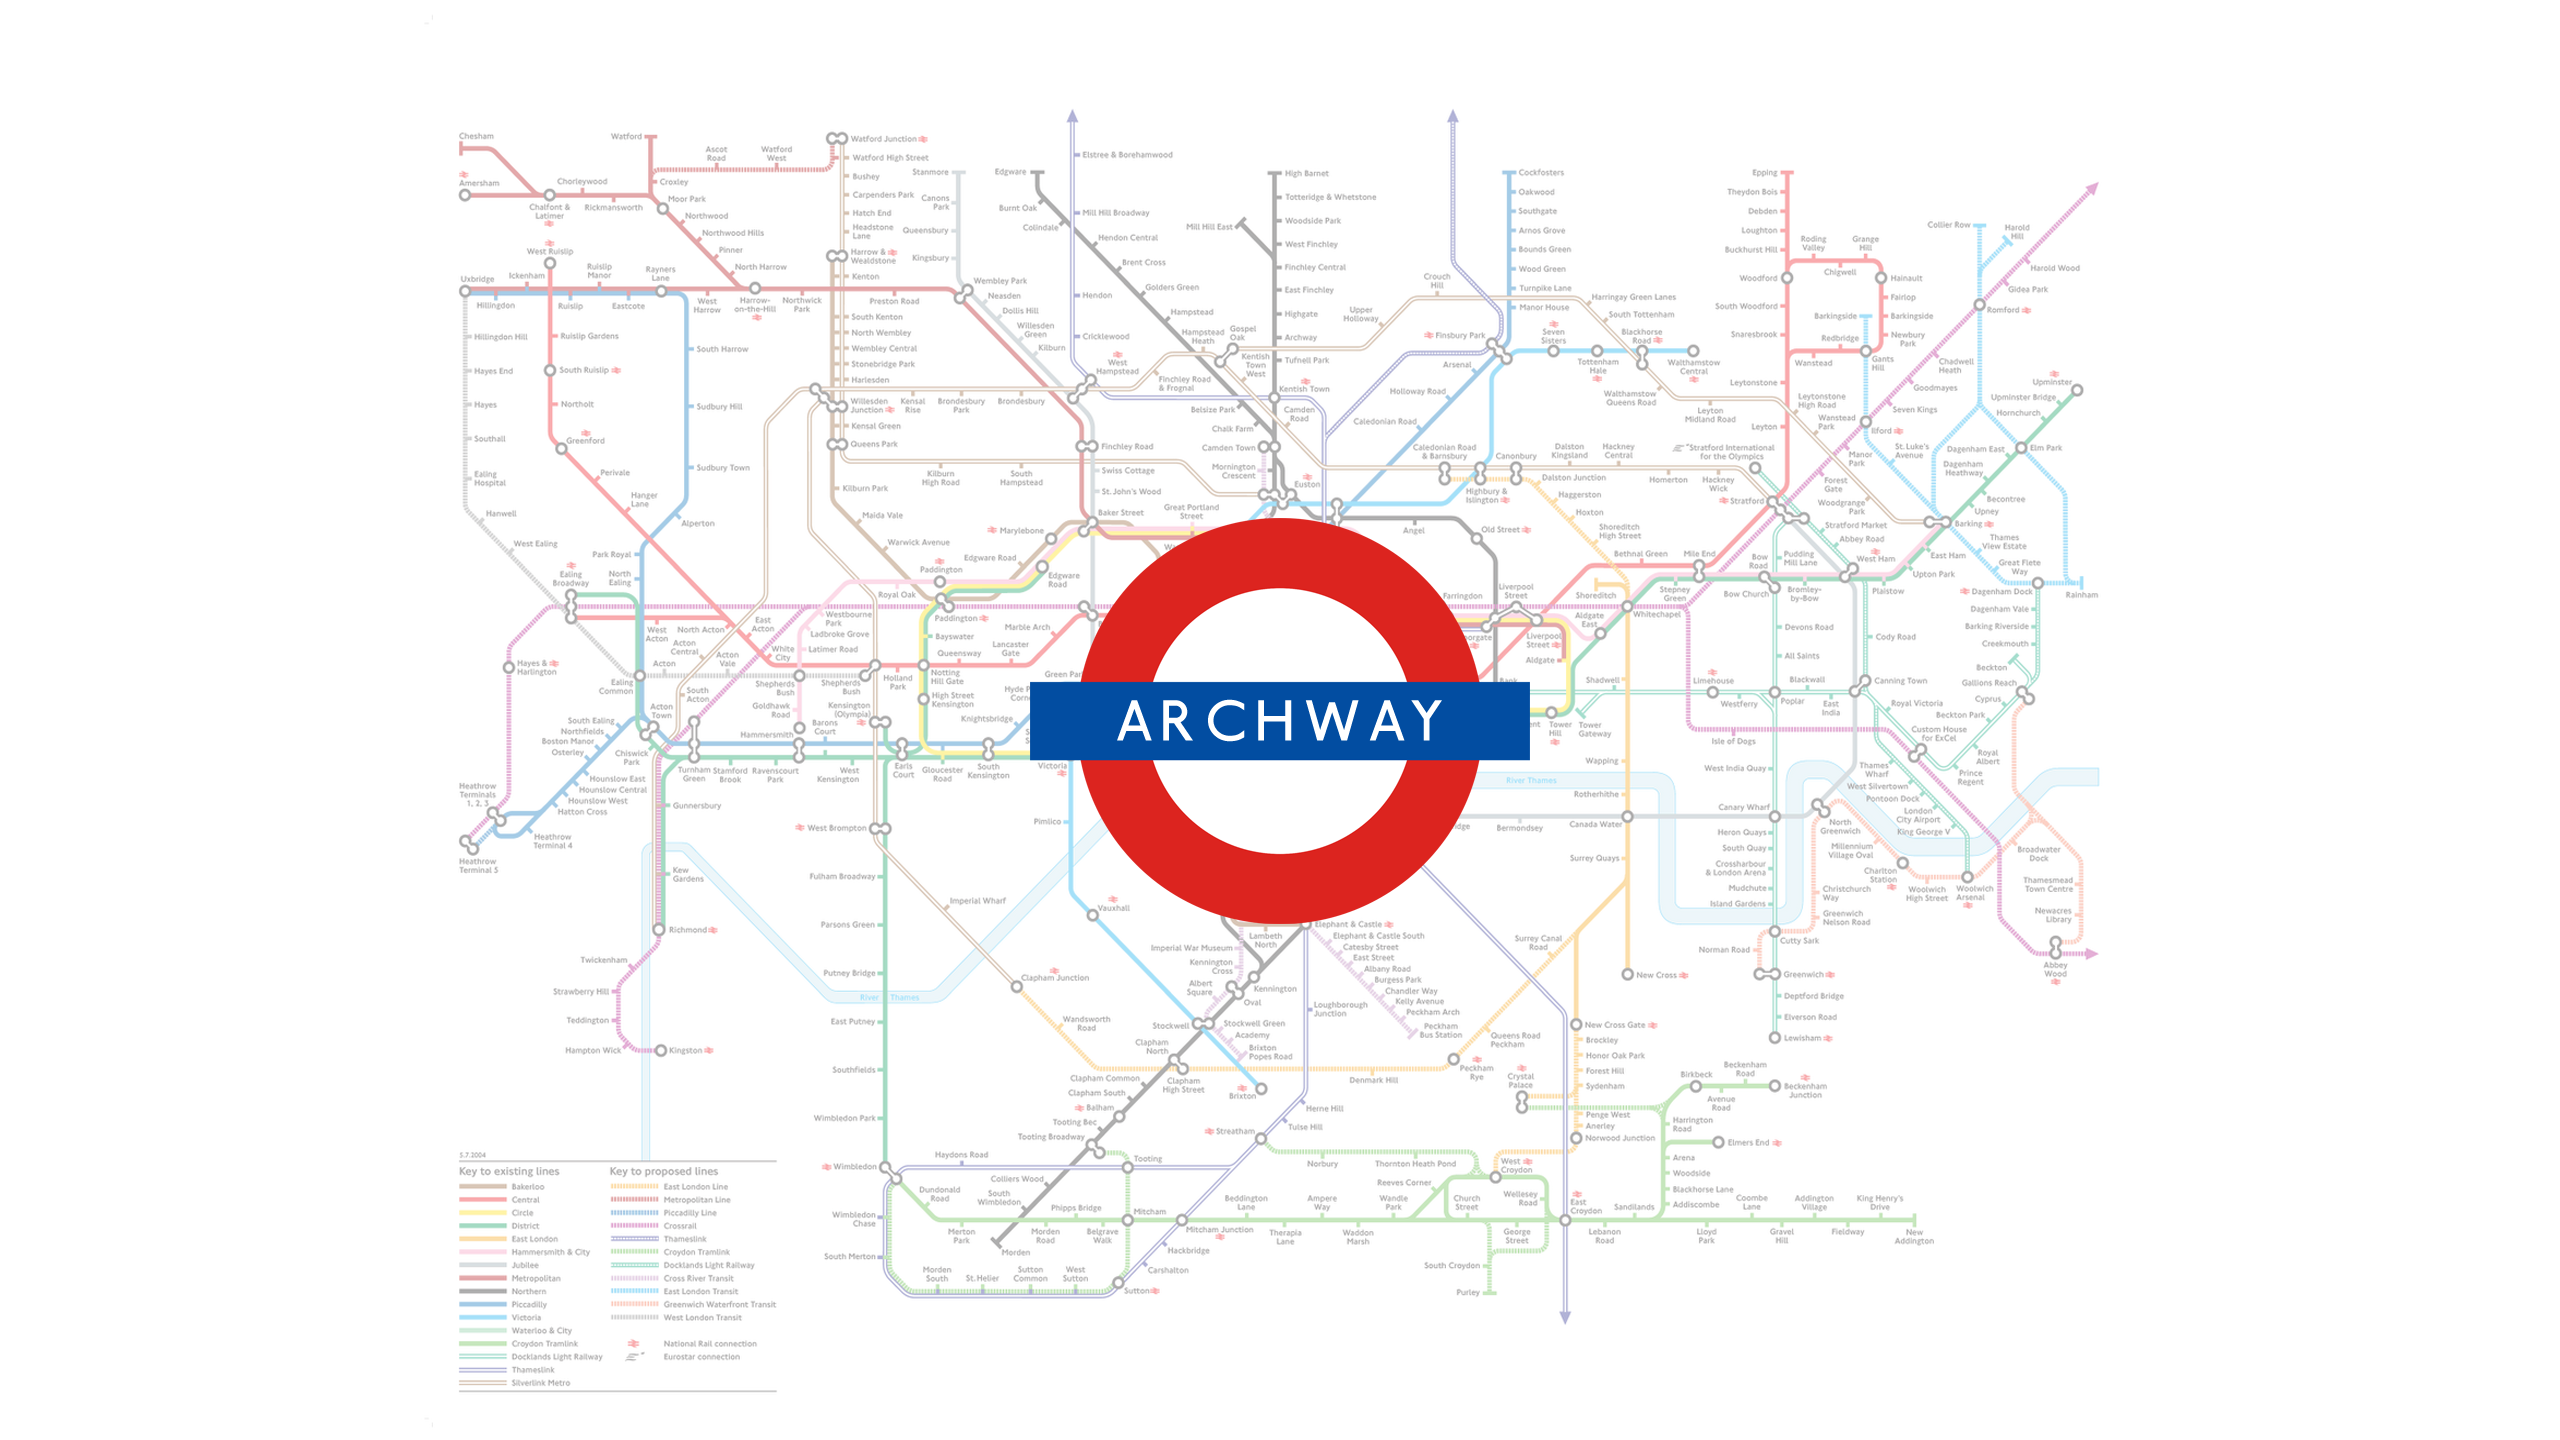 Archway (Map)